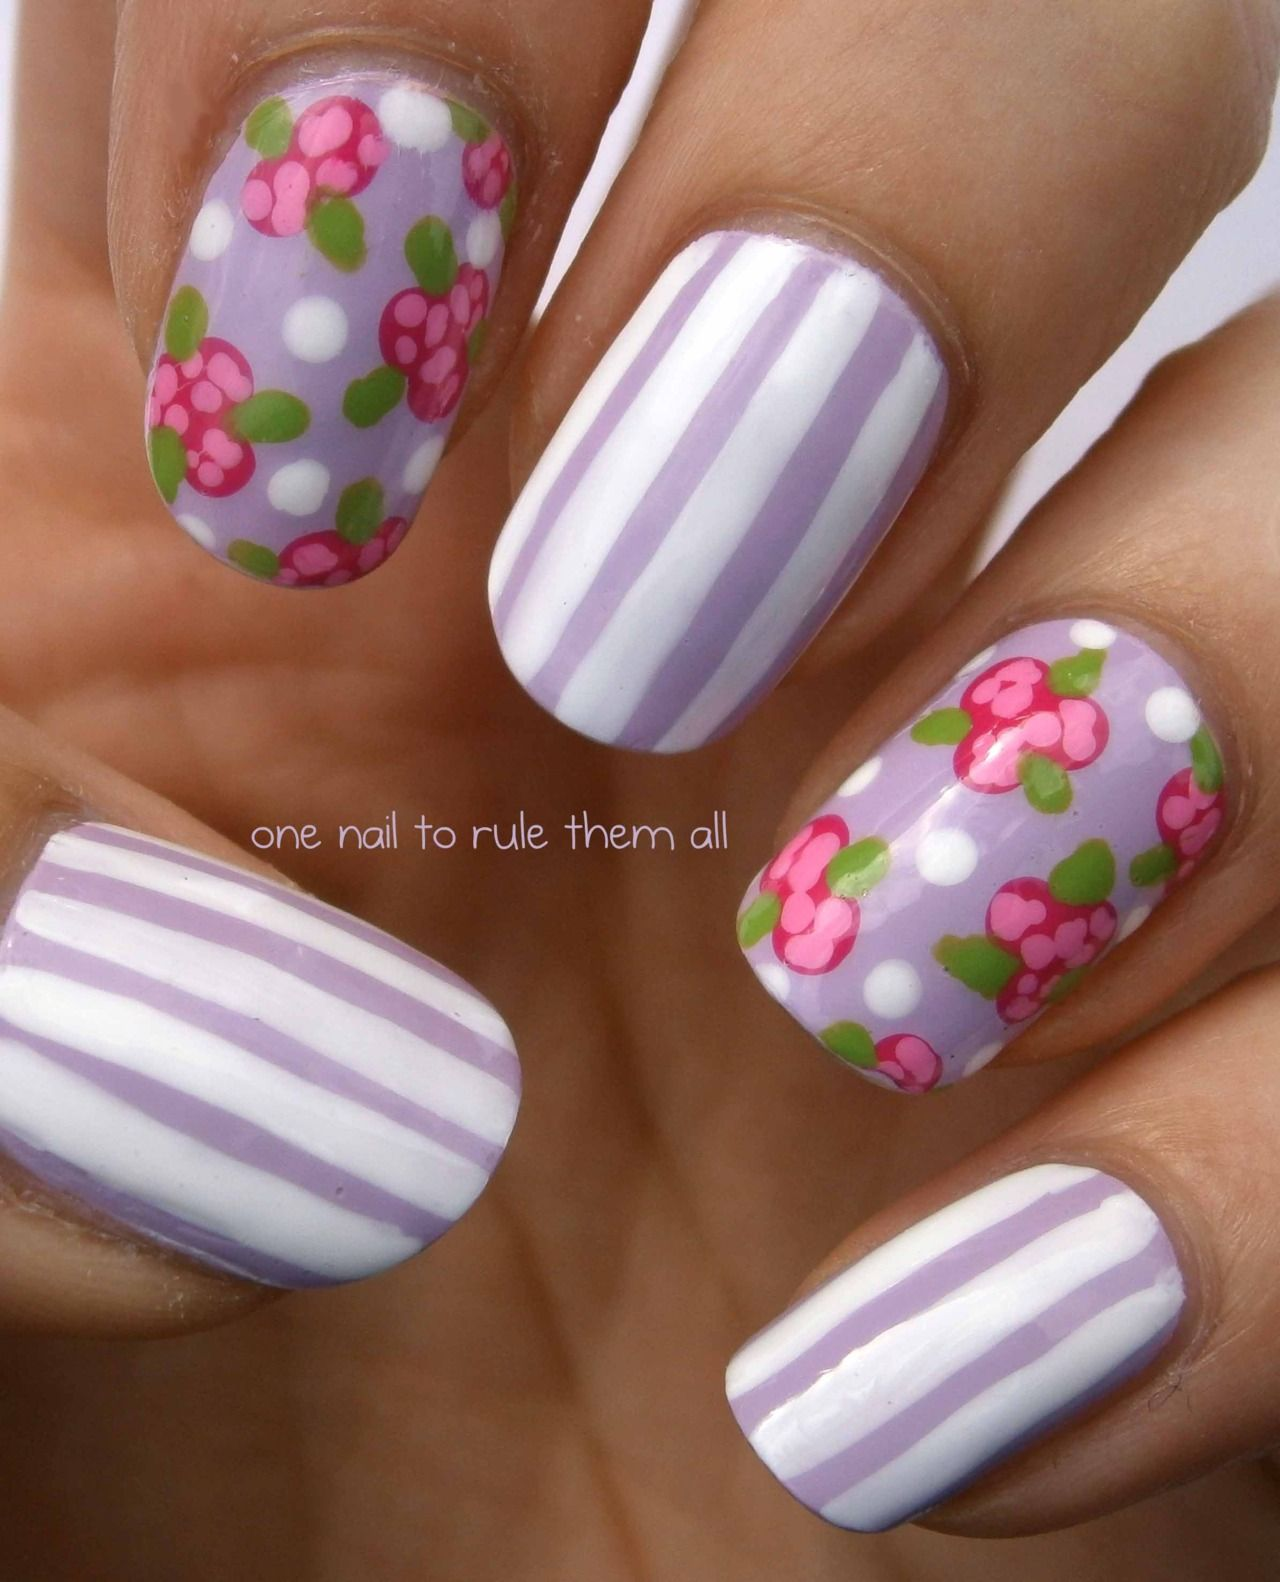 Generic rose and stripes design, so simple but I love it! More pictures and info on my blogspot